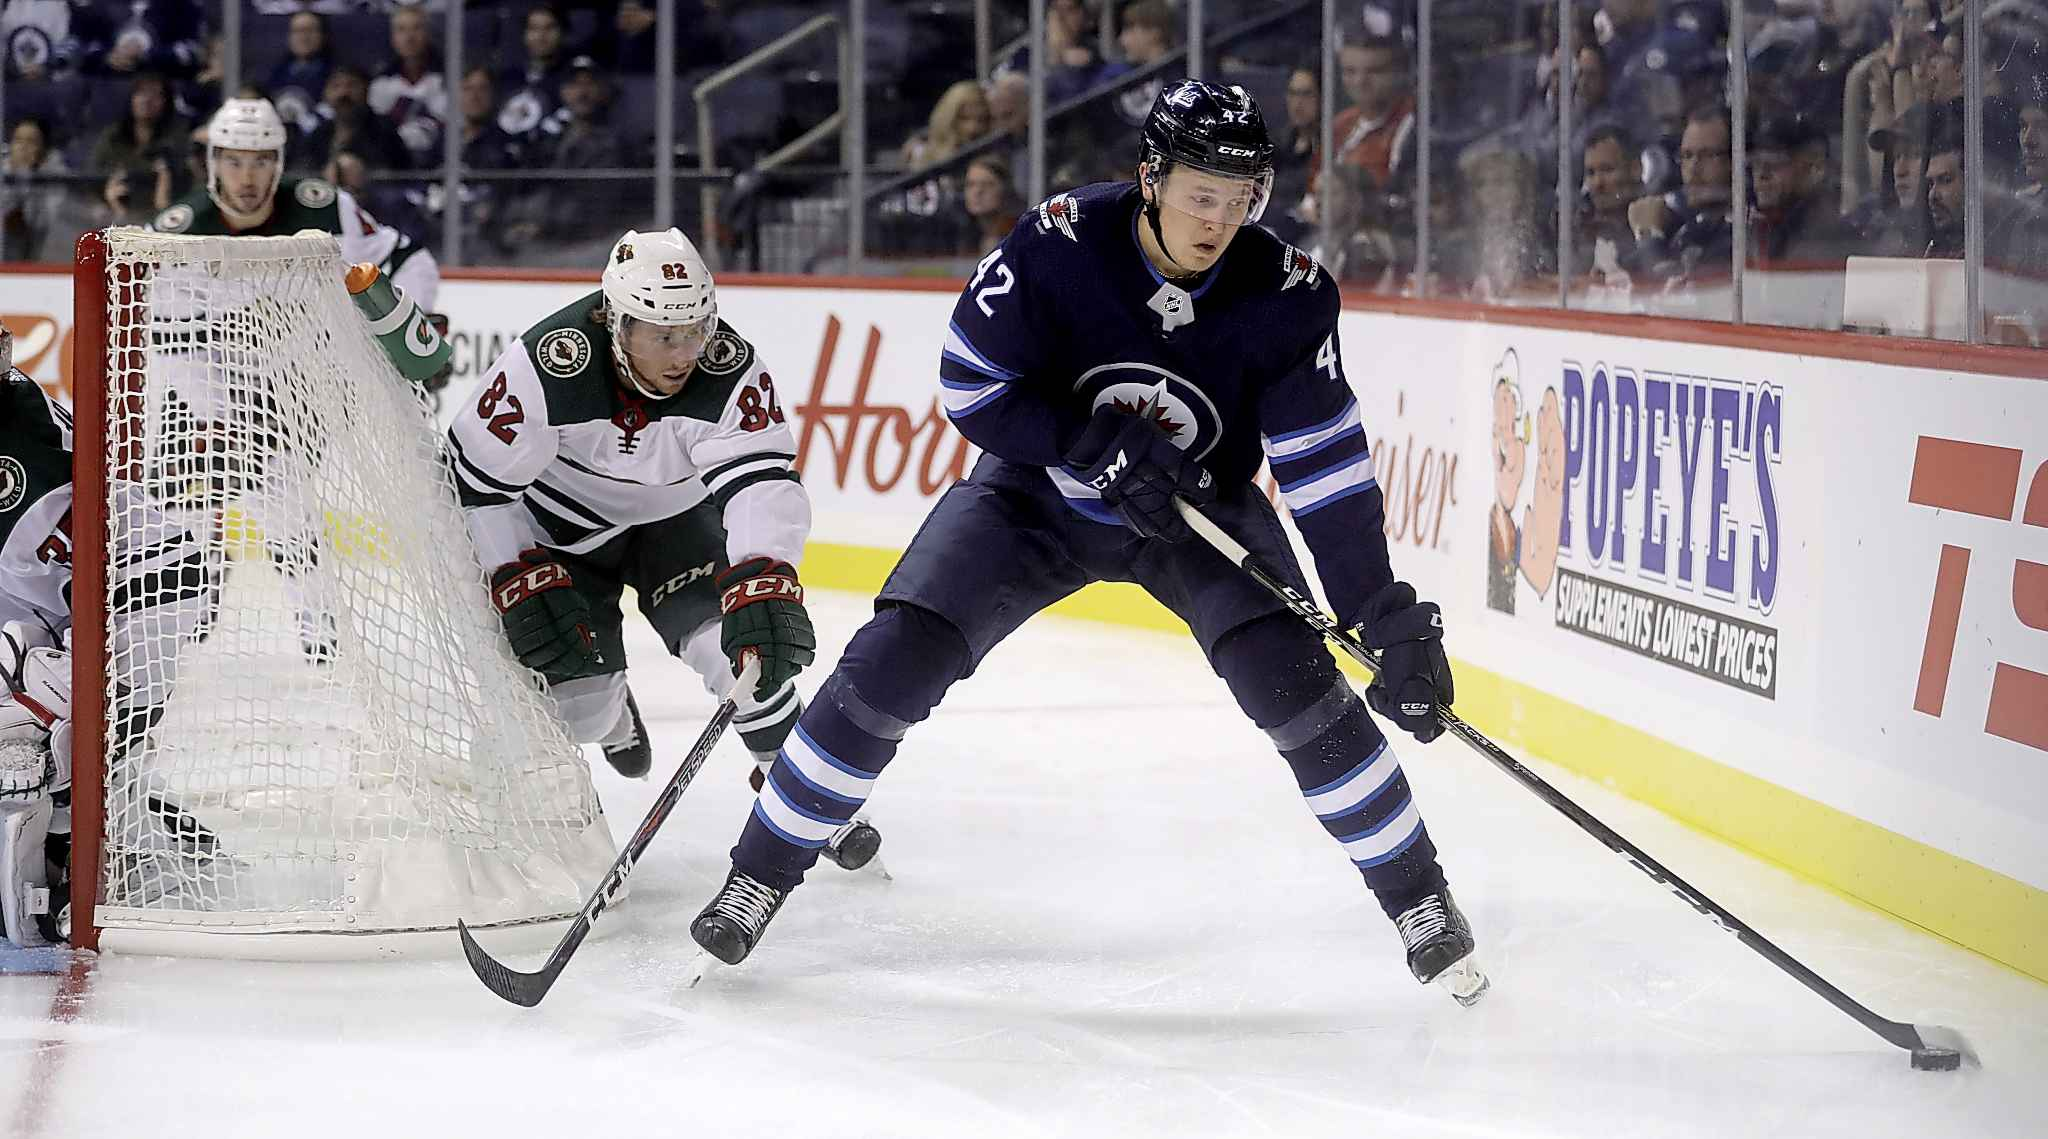 Winnipeg Jets' Kristian Vesalainen carries the puck in front of Minnesota Wild's Justin Kloos behind the Minnesota goal during second period preseason NHL hockey in Winnipeg, Monday. Along with line mates Mathieu Perreault and Jack Roslovic, Vesalainen had some of the more entertaining shifts of the game for the Jets.